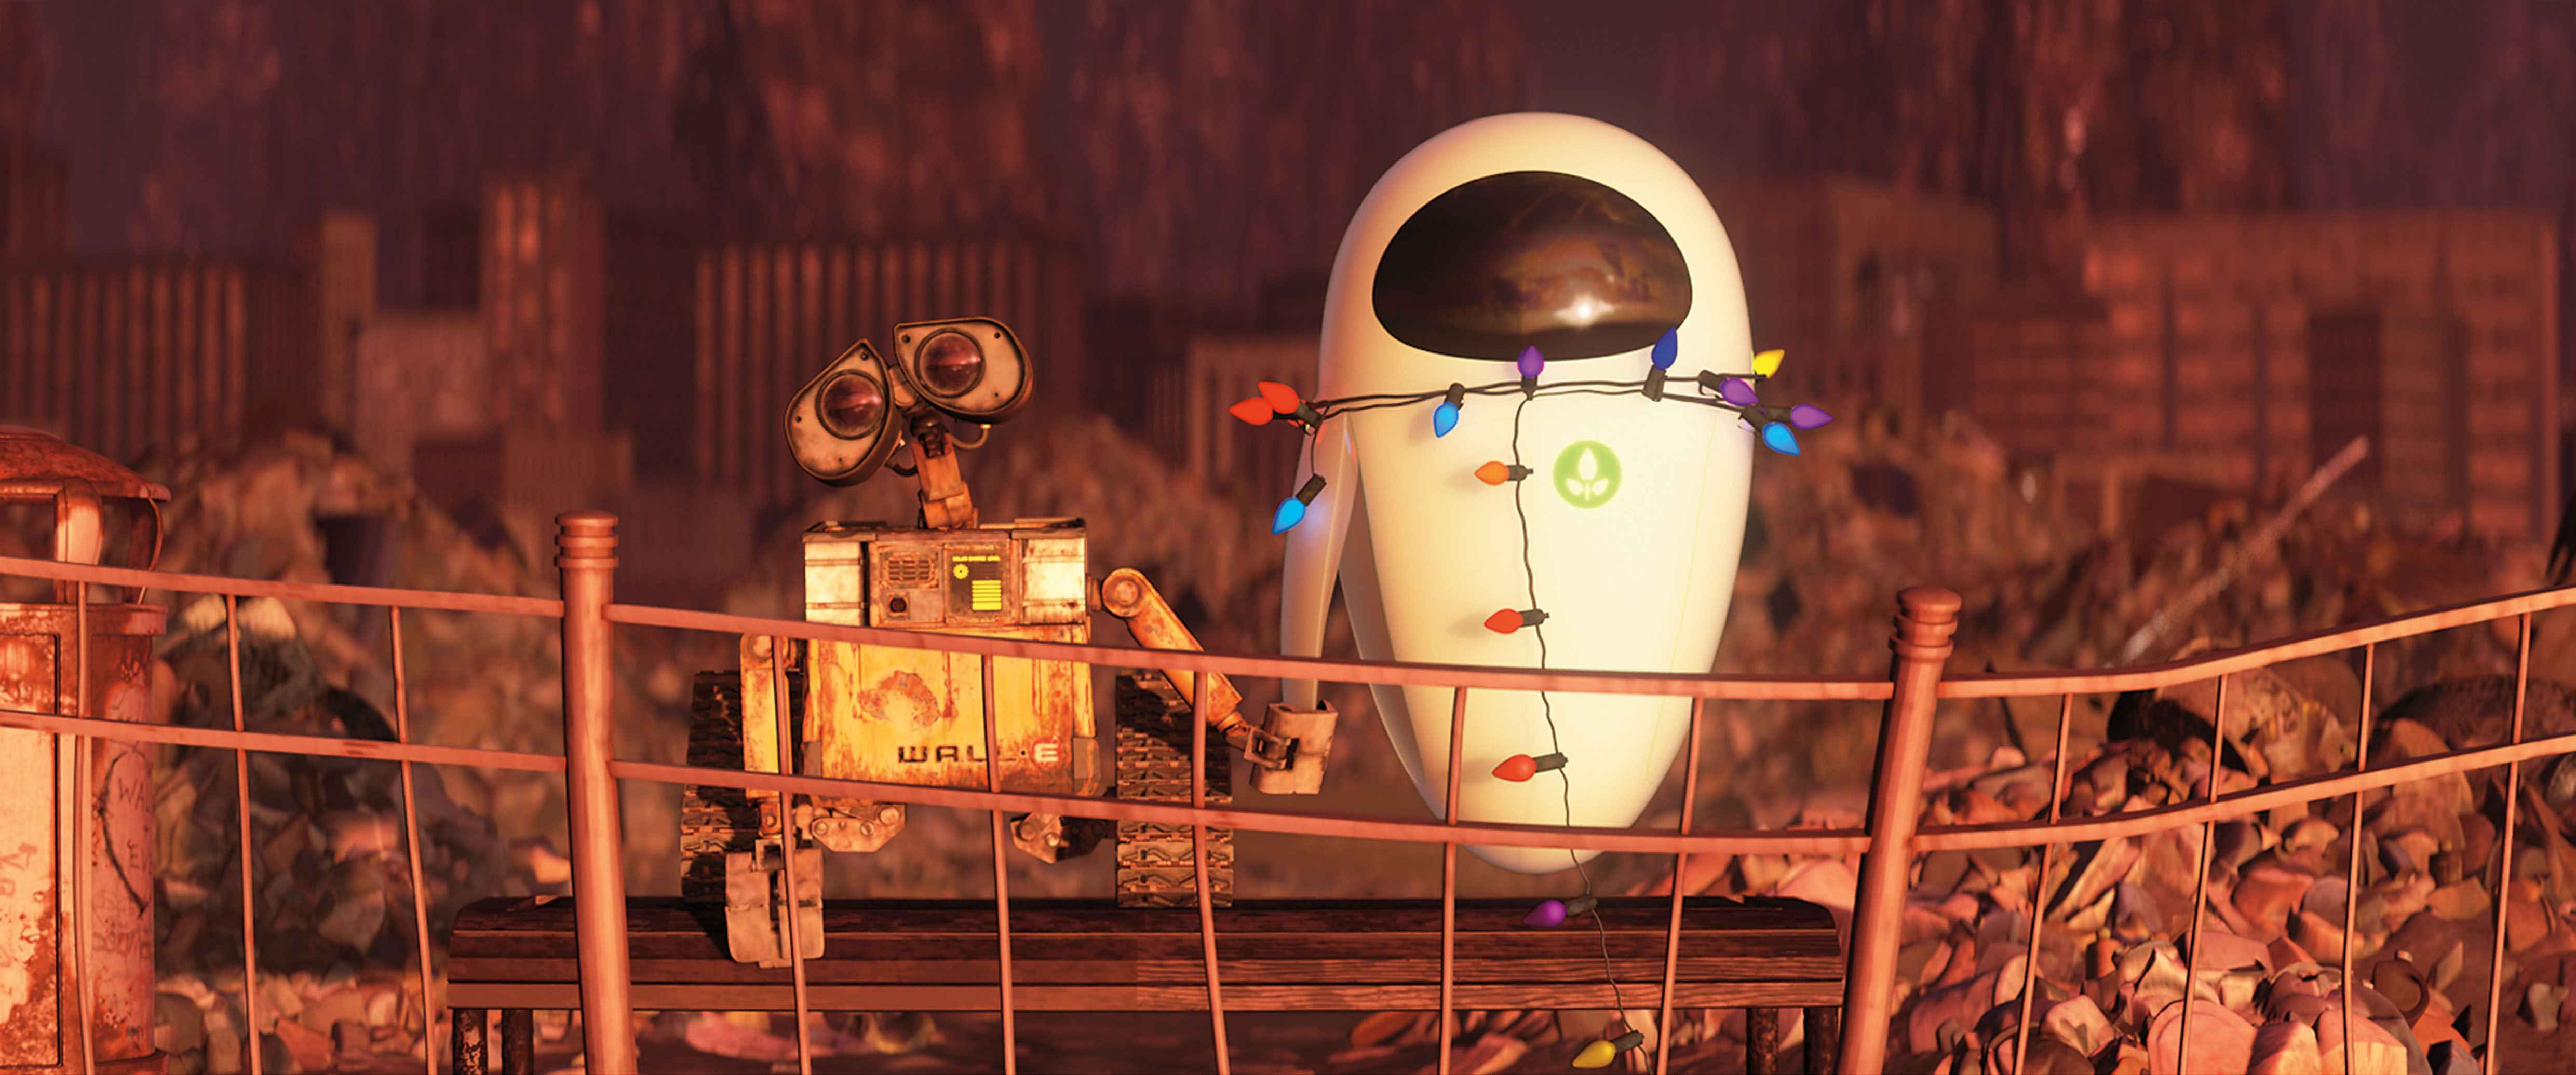 image - walle-eve-bench-lg | disney wiki | fandom poweredwikia